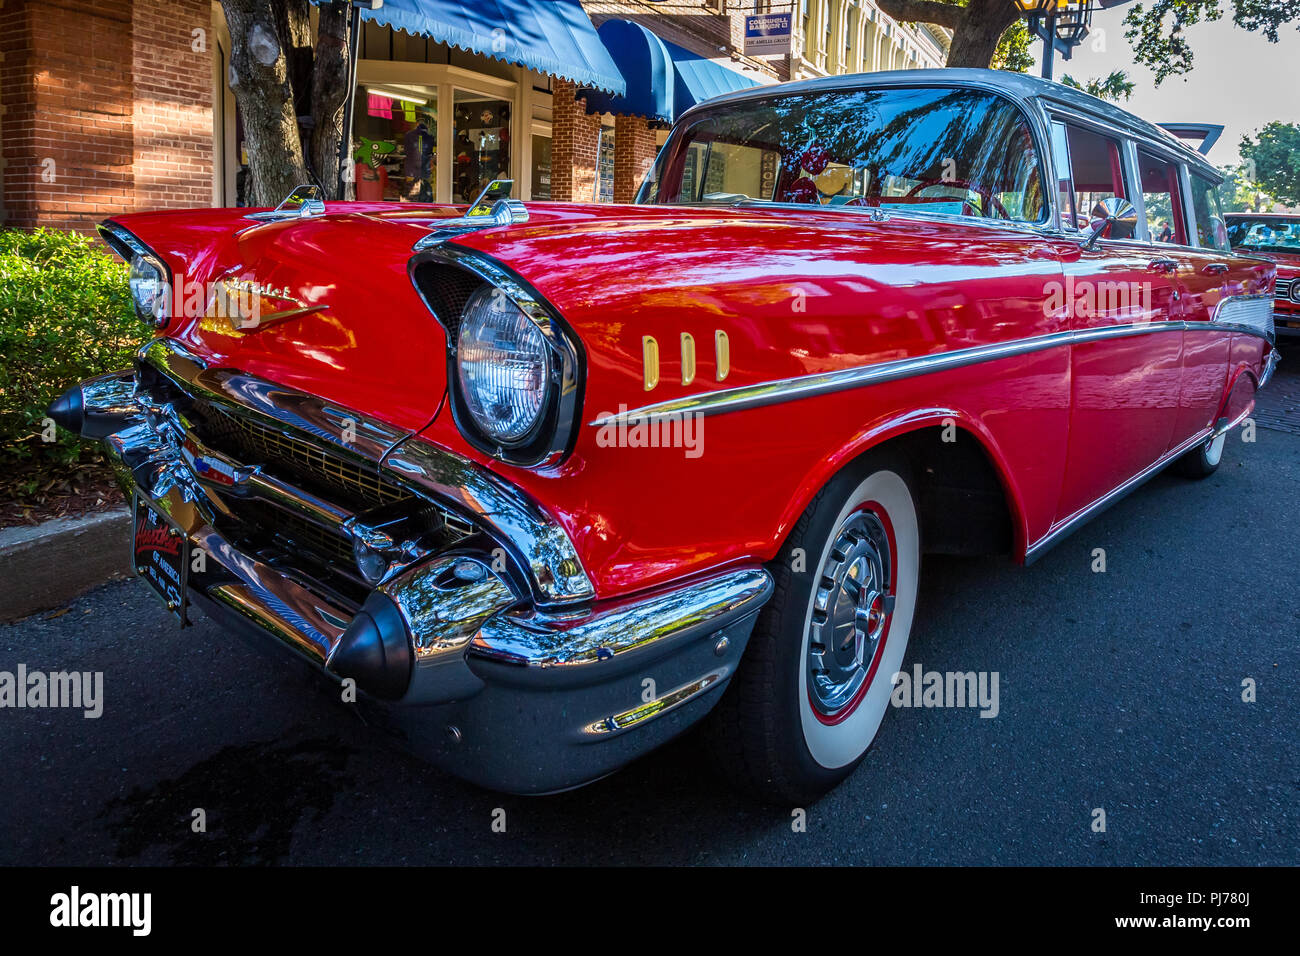 1957 Chevrolet Belair Station Wagon At A Classic Car Show In Amelia Chevy Bel Air Island Florida